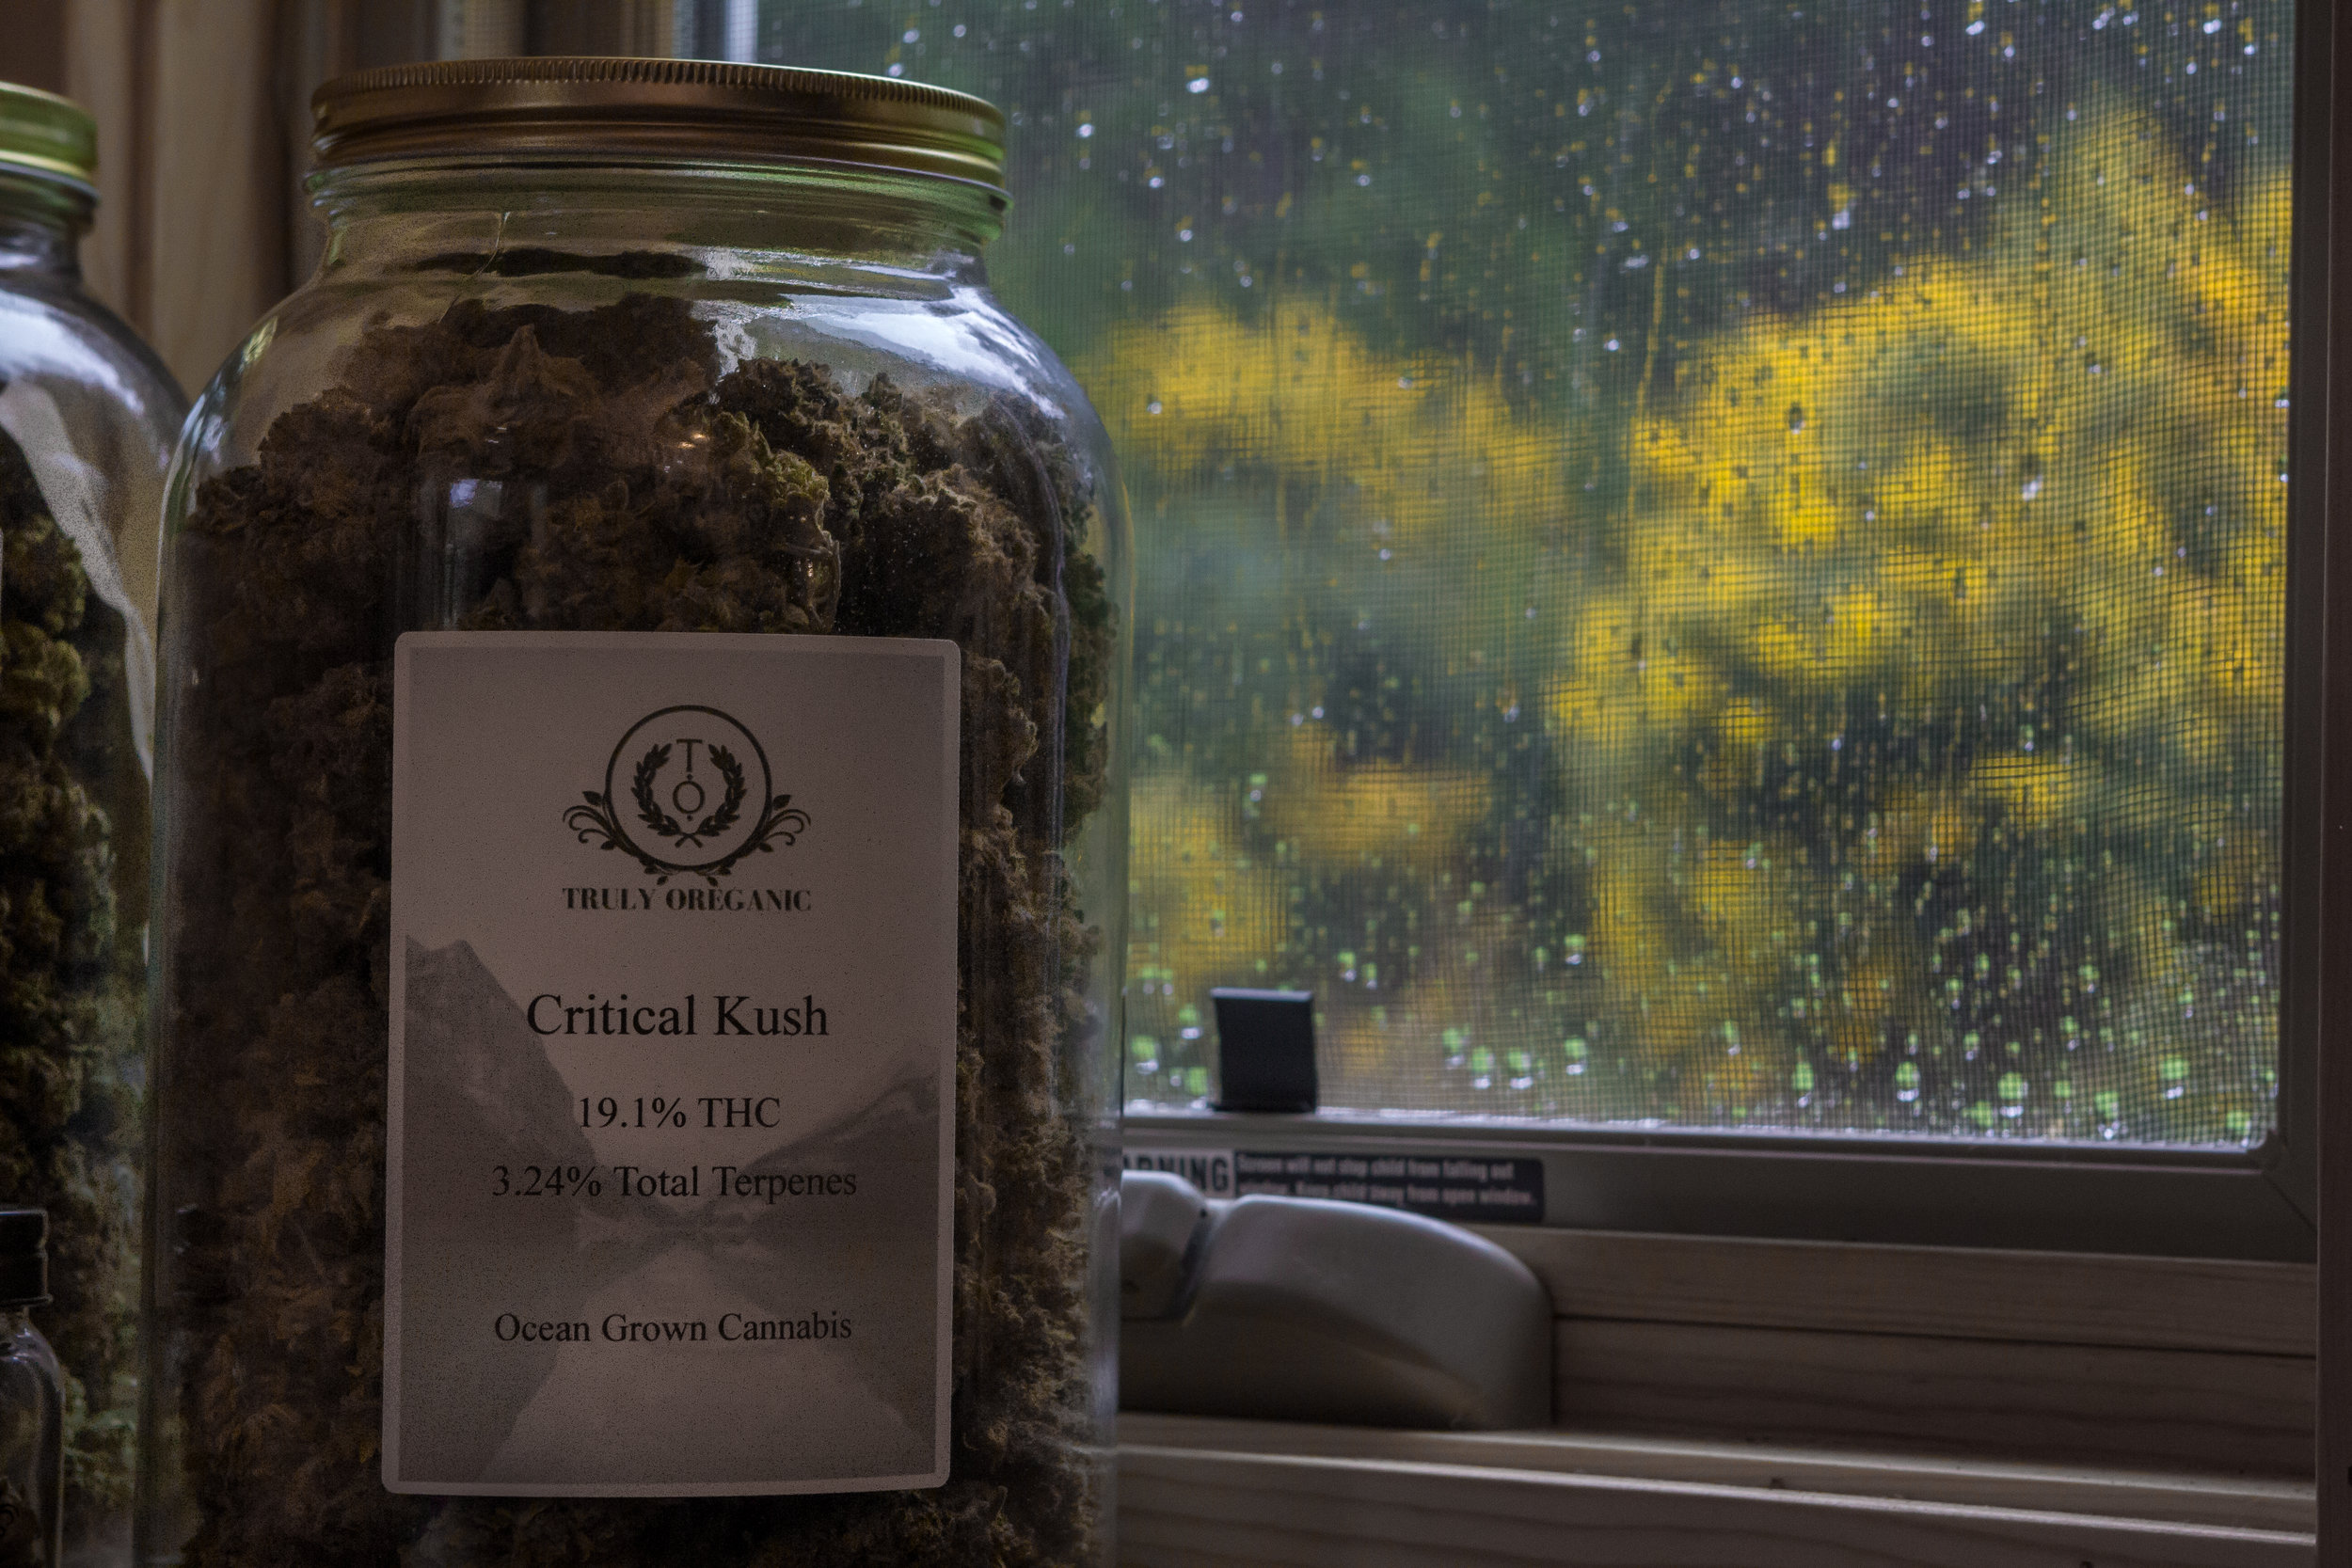 Critical Kush in Jar by Window.jpg